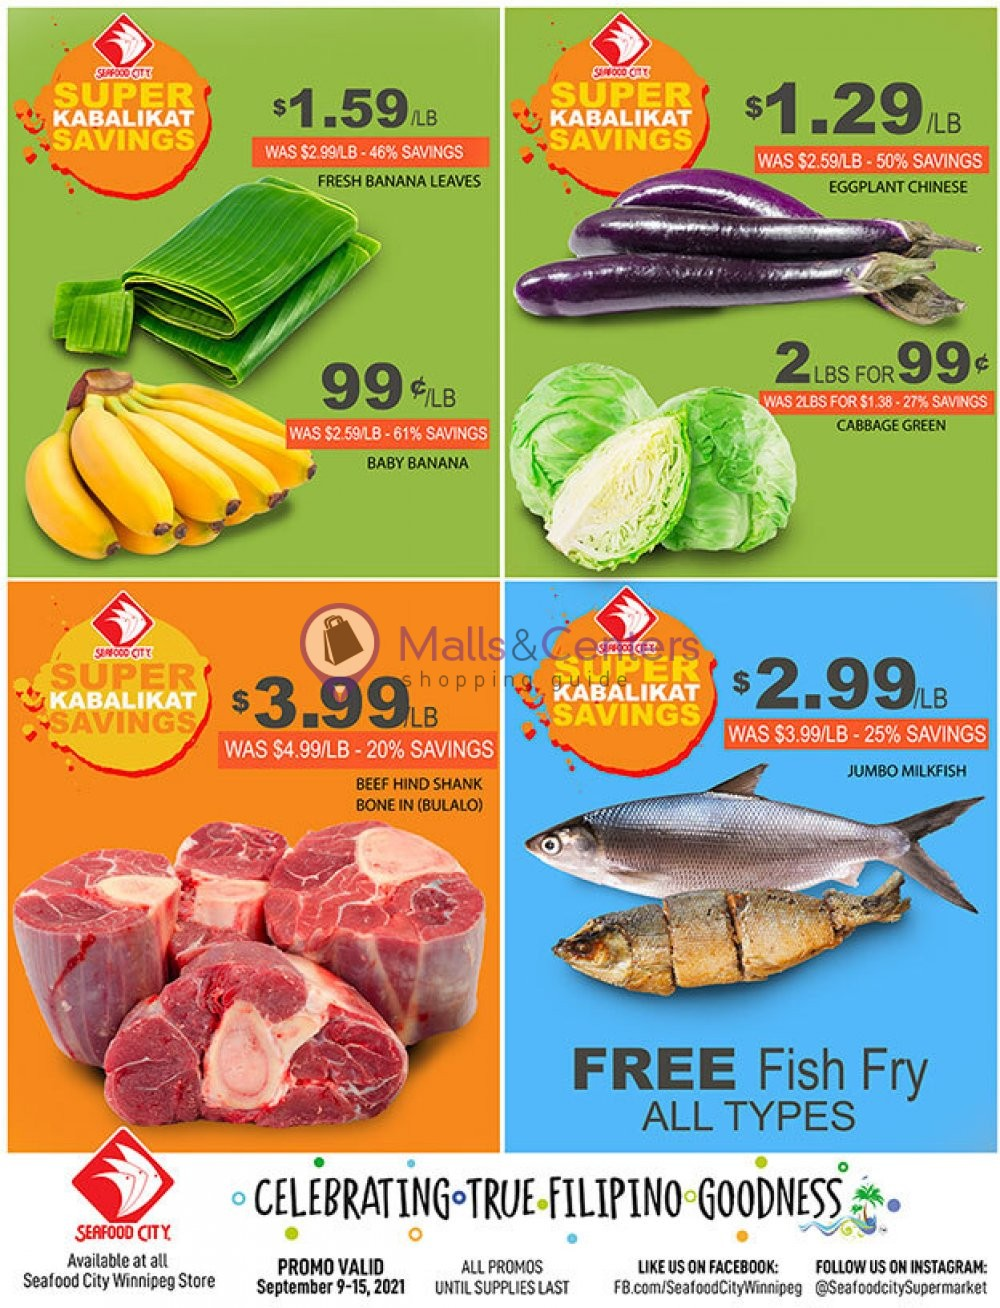 weekly ads Seafood City Supermarket - page 1 - mallscenters.com